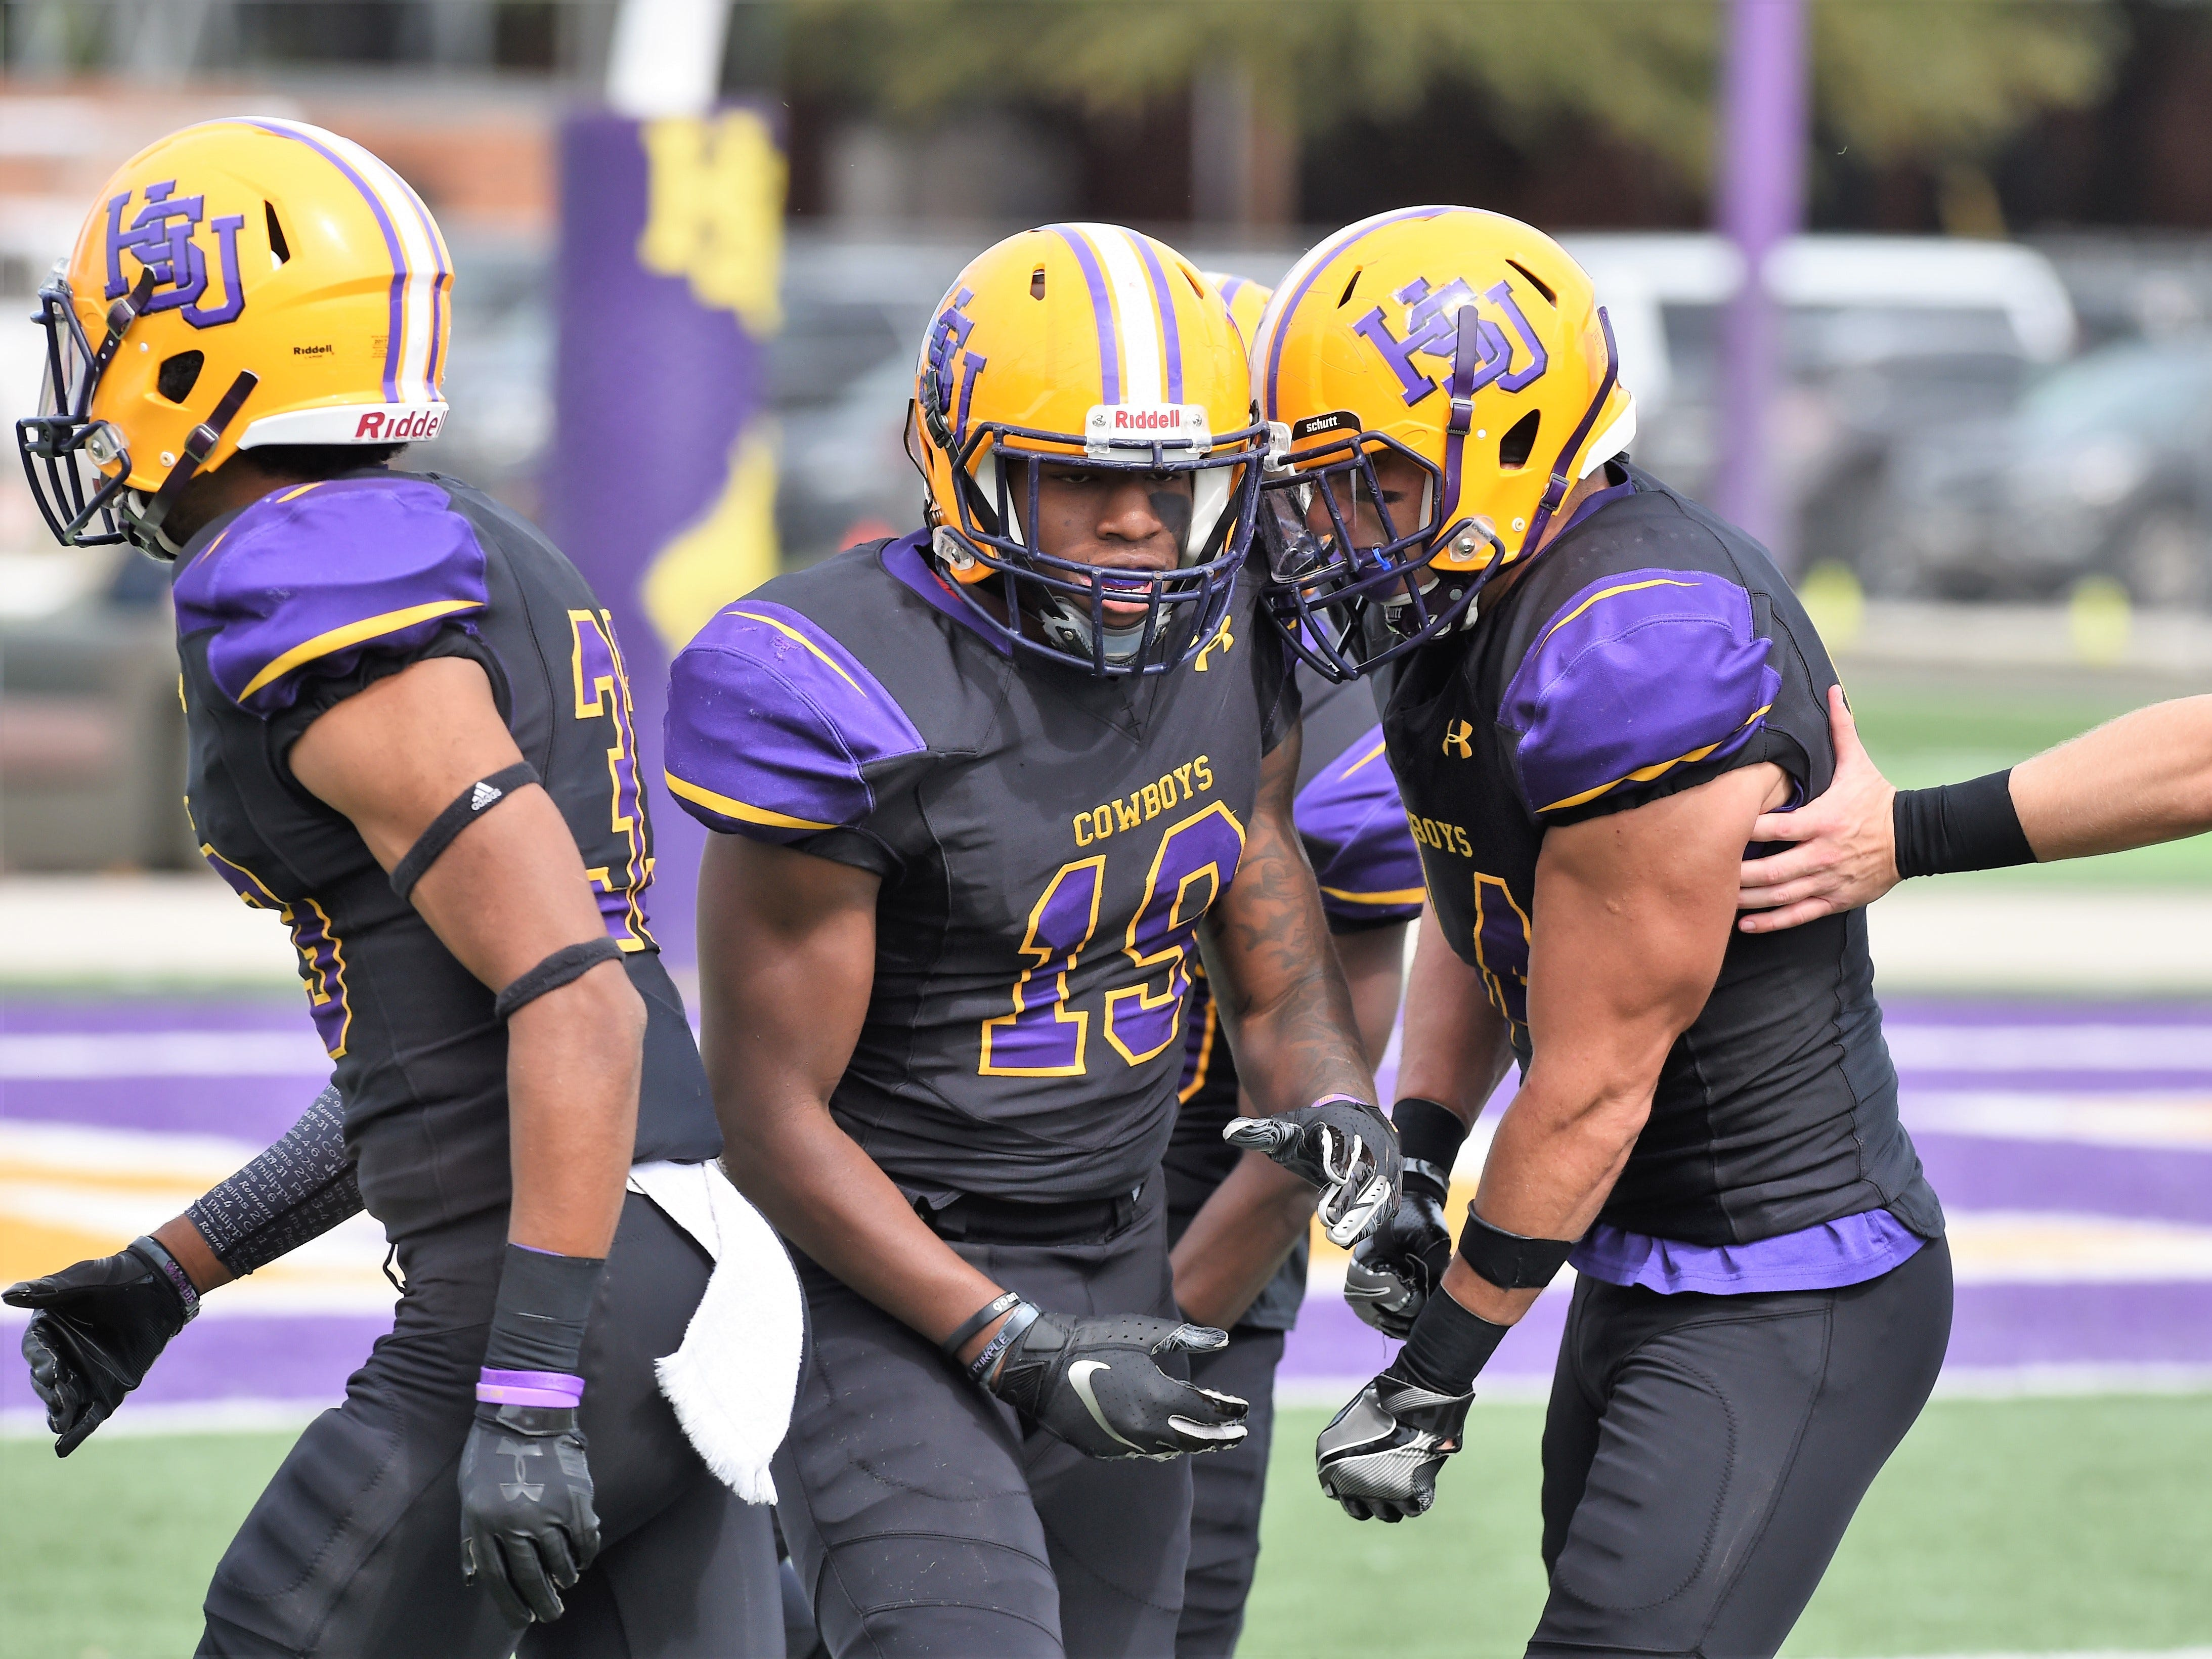 Hardin-Simmons' Kelton McGee (19) is congratulated after a special teams tackle against Texas Lutheran at Shelton Stadium on Saturday, Oct. 20, 2018.